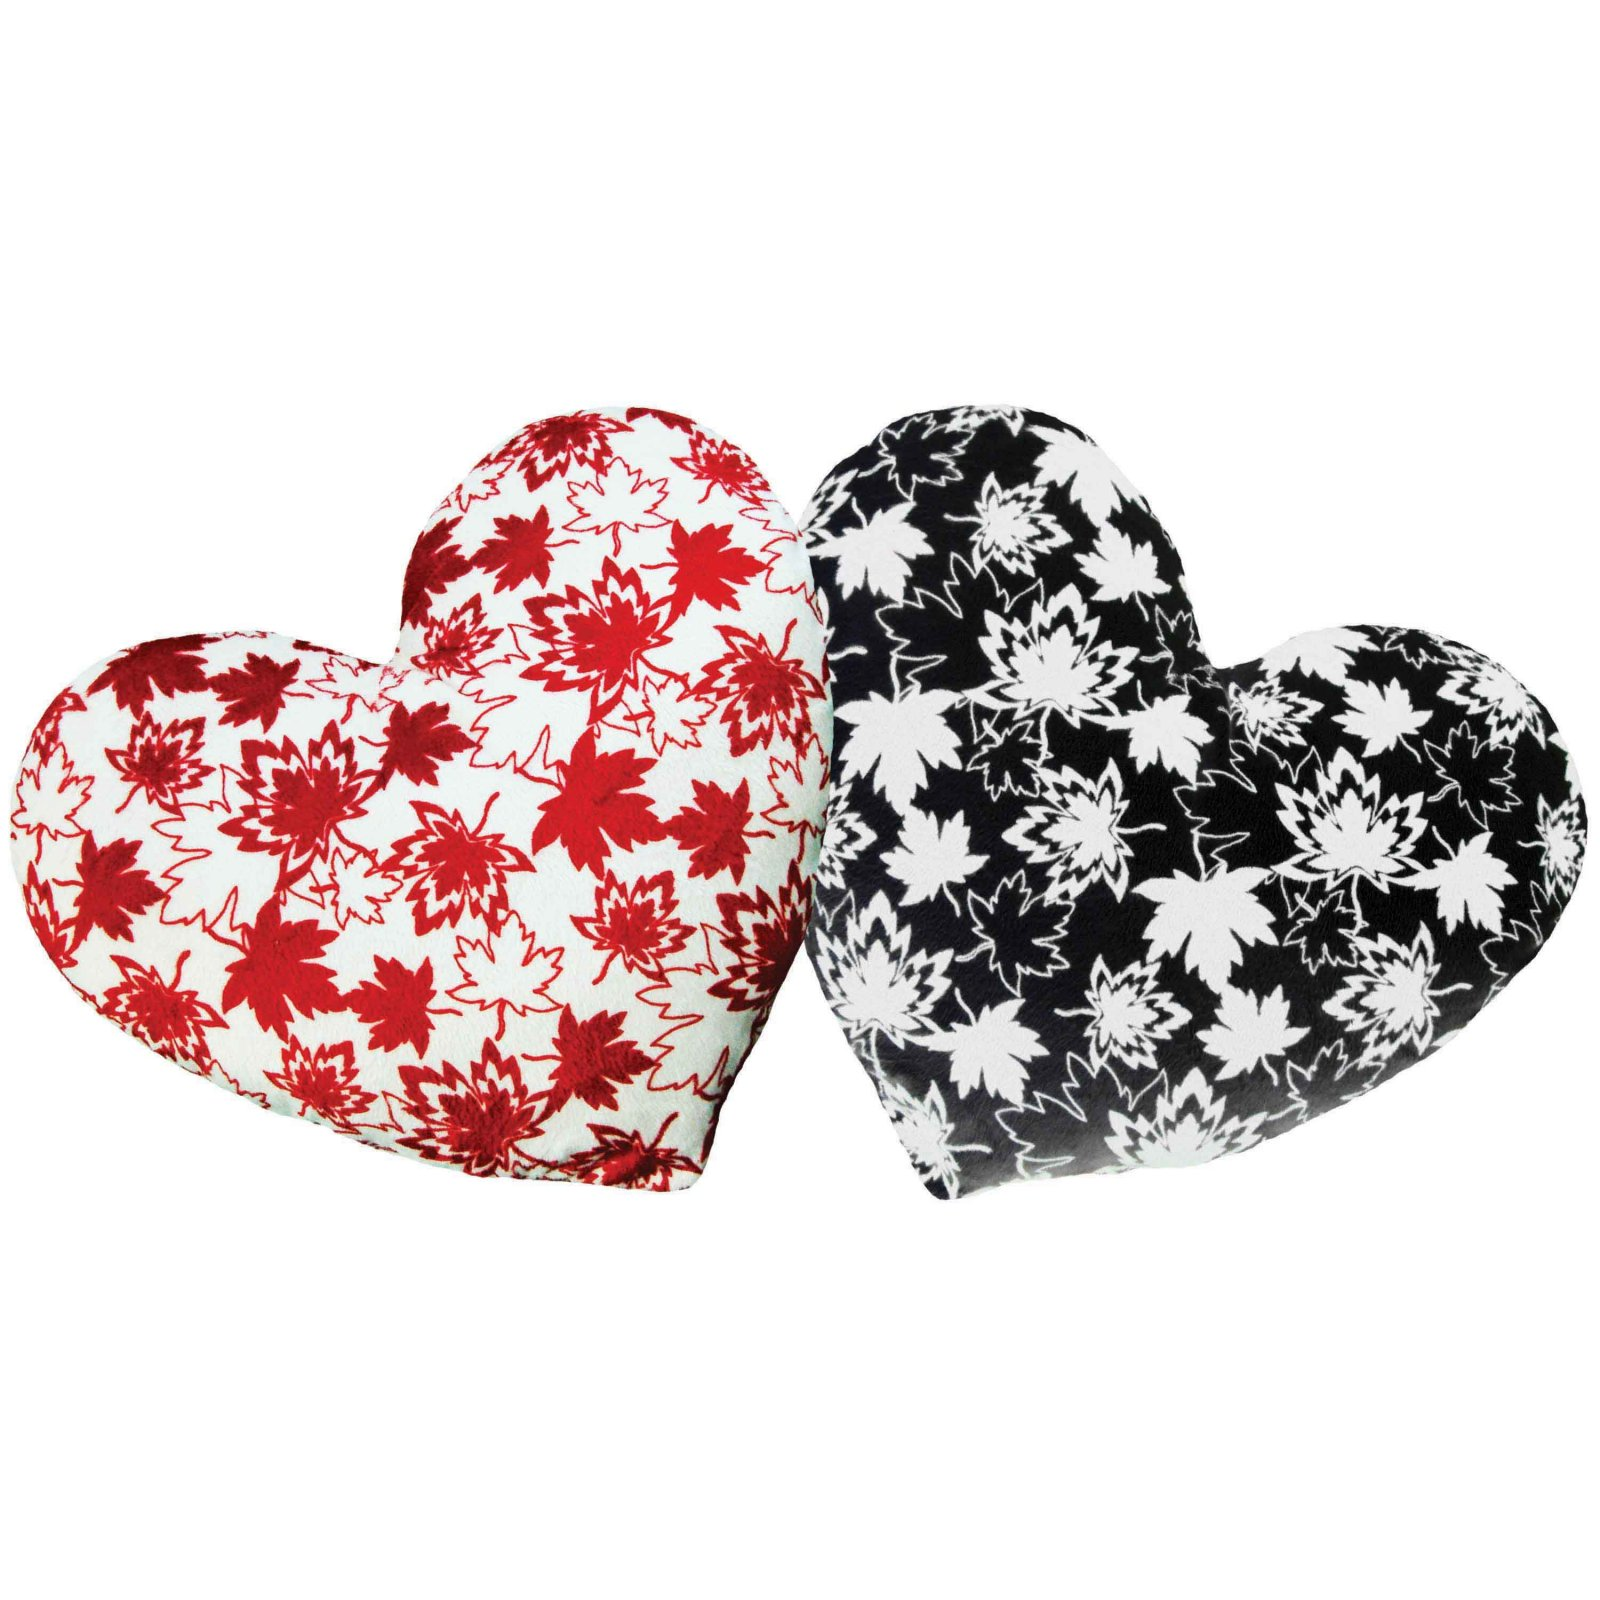 SHAN-FP007 - LOVE CANADA PILLOW BY SHANIA SUNGA 17X14 FREE PATTERN